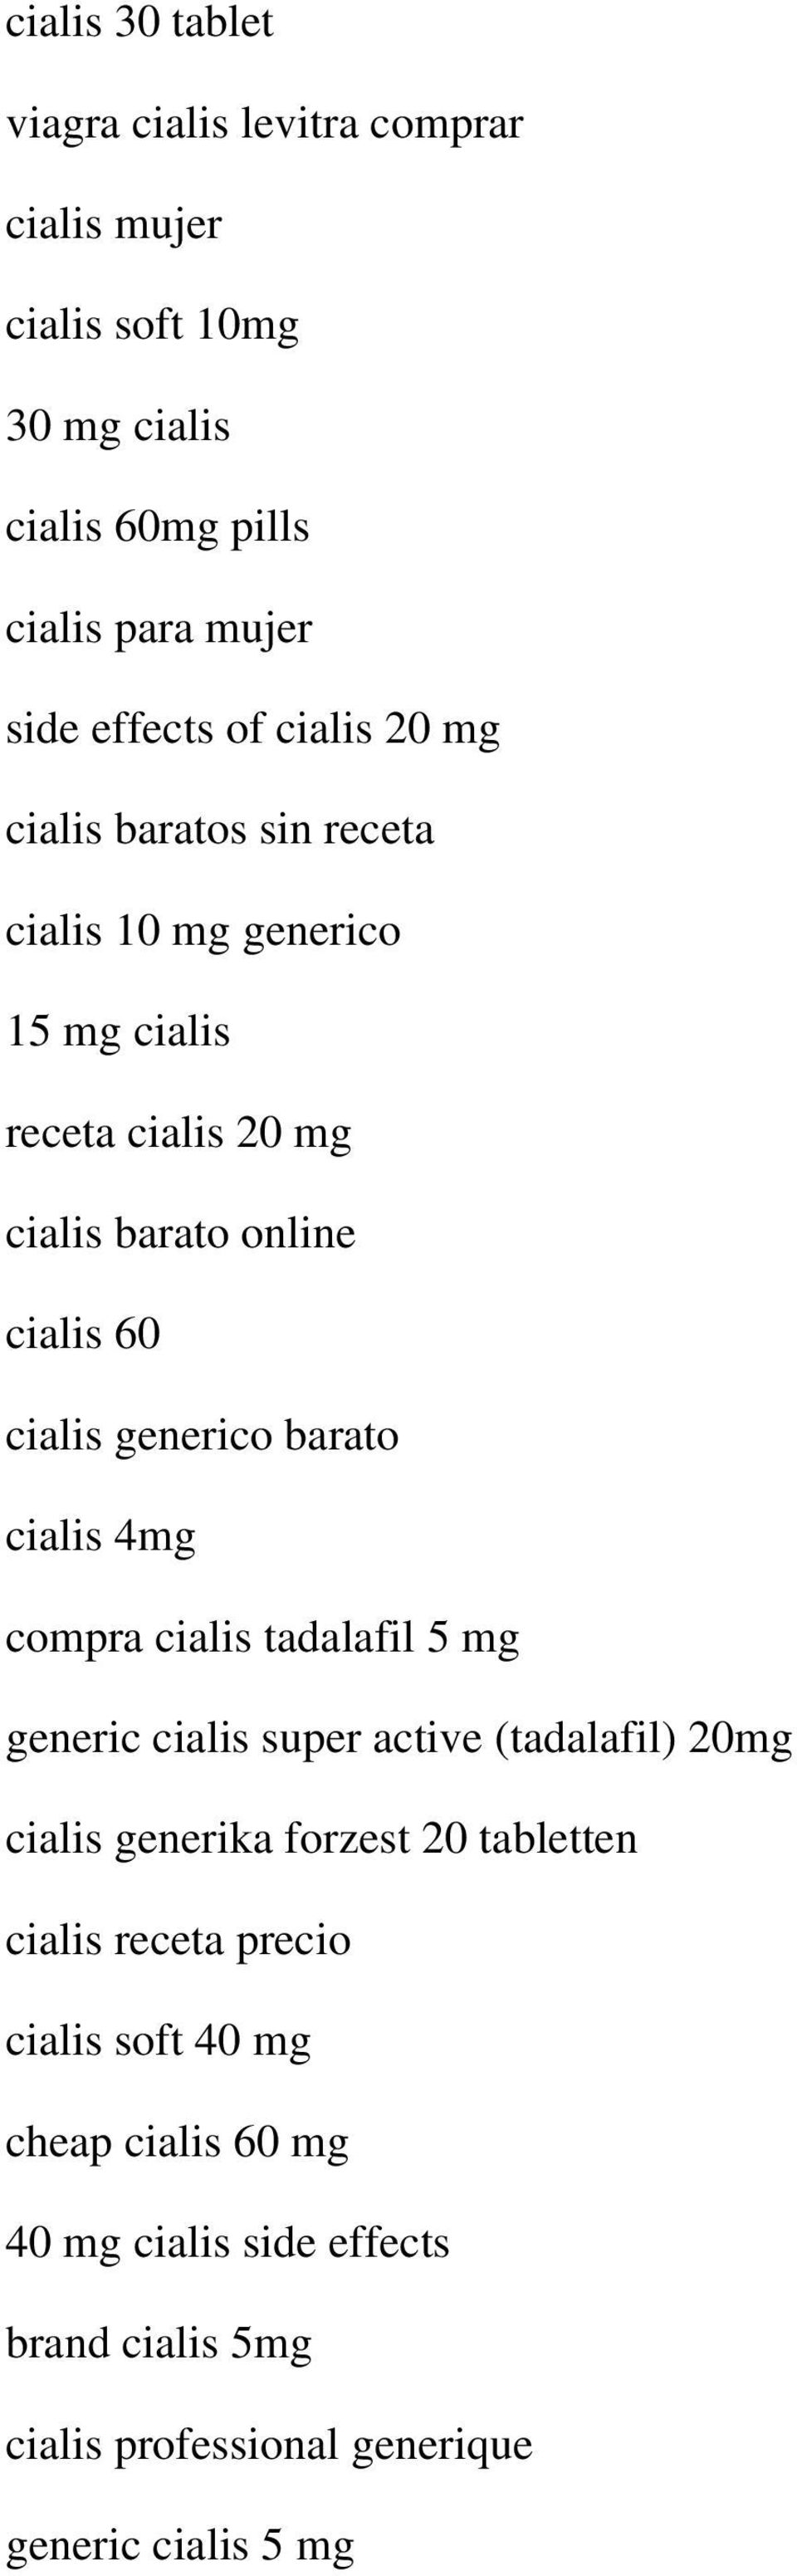 generico barato cialis 4mg compra cialis tadalafil 5 mg generic cialis super active (tadalafil) 20mg cialis generika forzest 20 tabletten